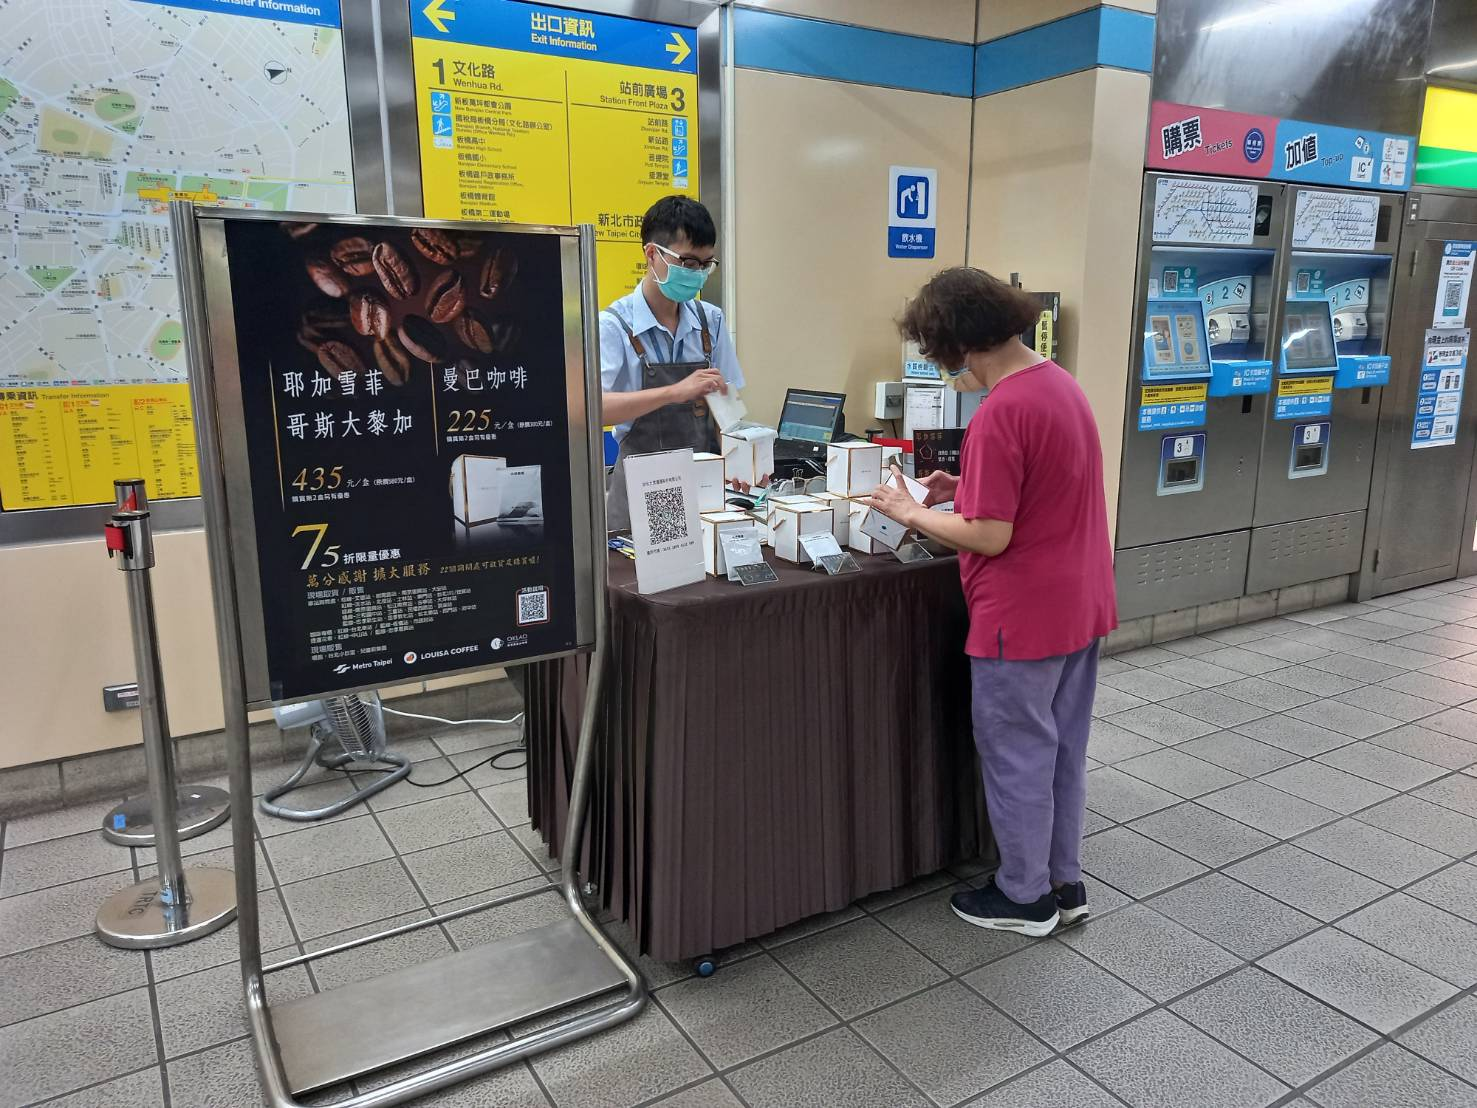 Commuters shopping at one of the MRT merchandise stalls